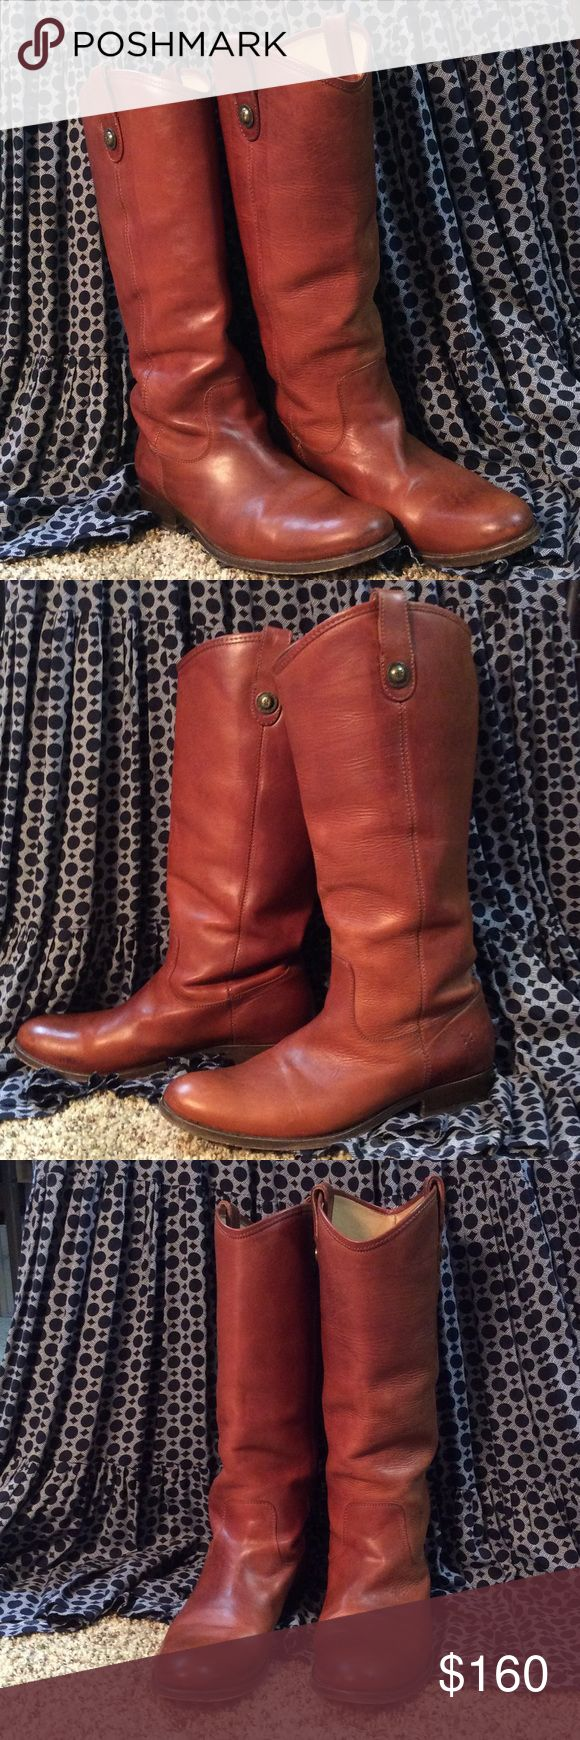 Frye Melissa button boot Cognac size 10, worn lightly EUC frye Shoes Heeled Boots